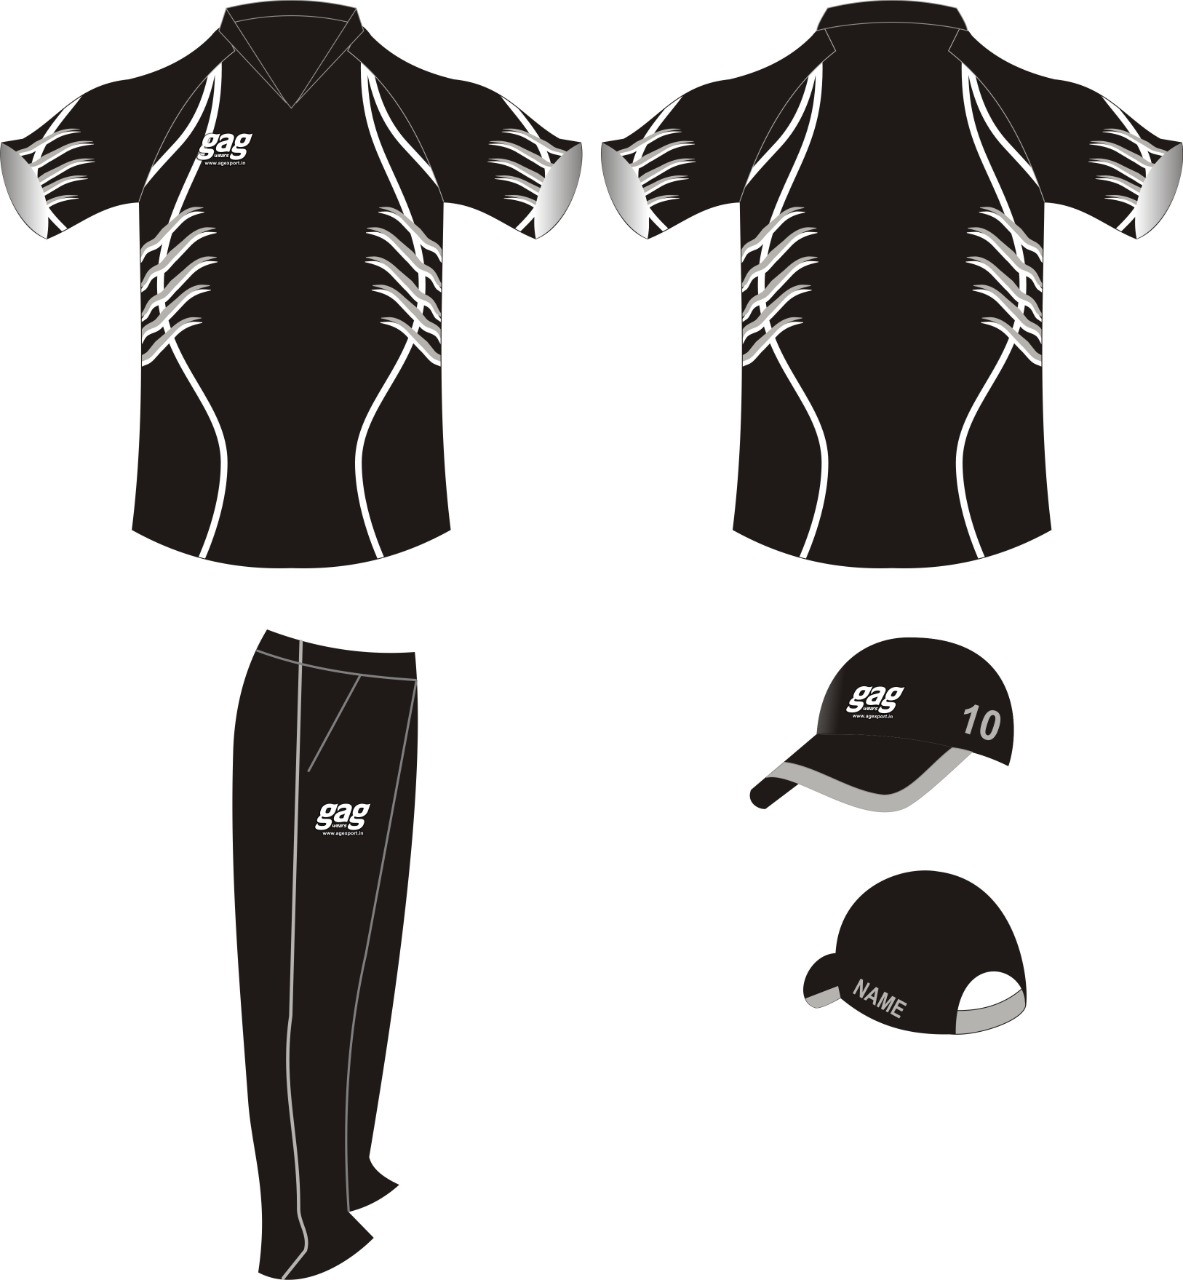 Custom Cricket Jerseys Manufacturers in Jalandhar in Argentina